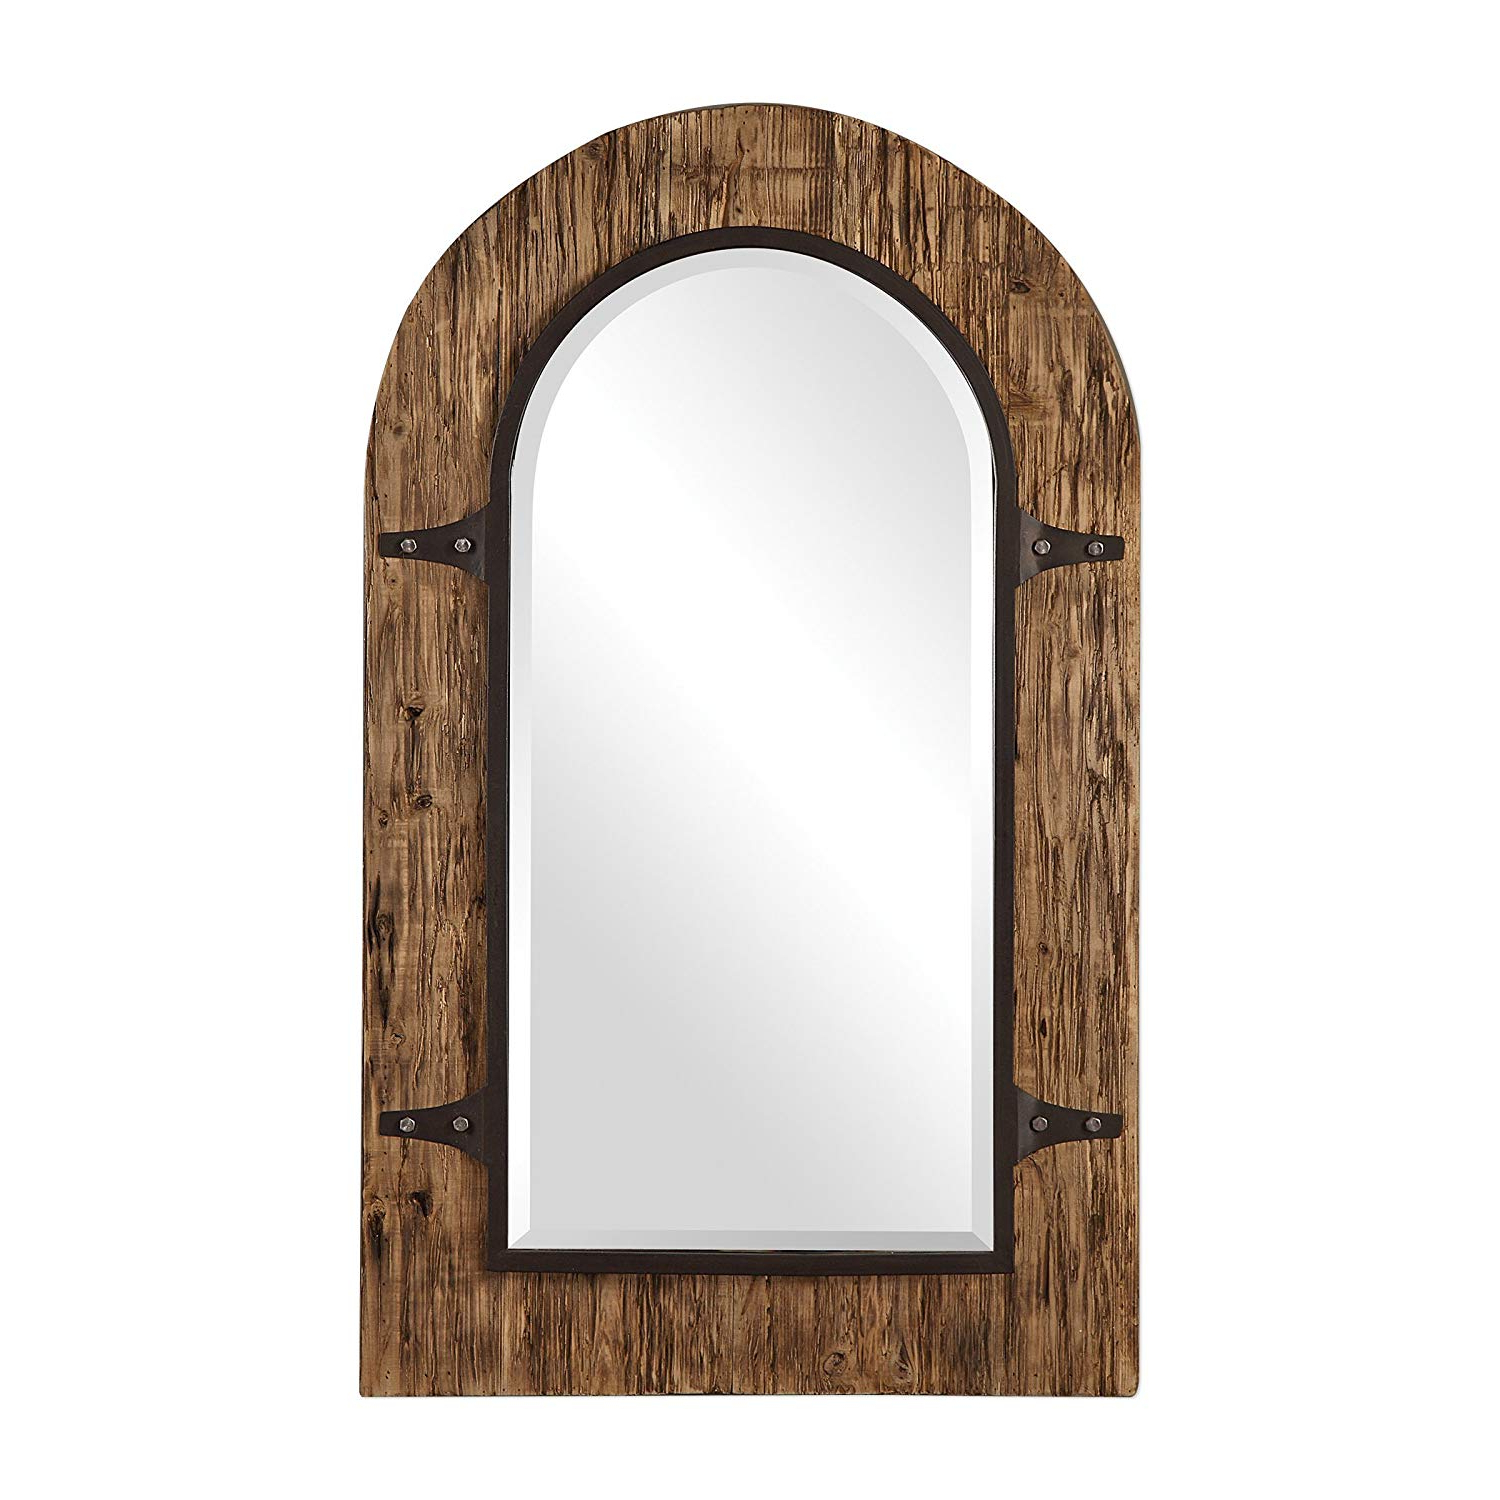 Most Recent Burnes Oval Traditional Wall Mirrors Regarding Amazon: My Swanky Home Rustic Gothic Reclaimed Wood Arch Wall (View 19 of 20)